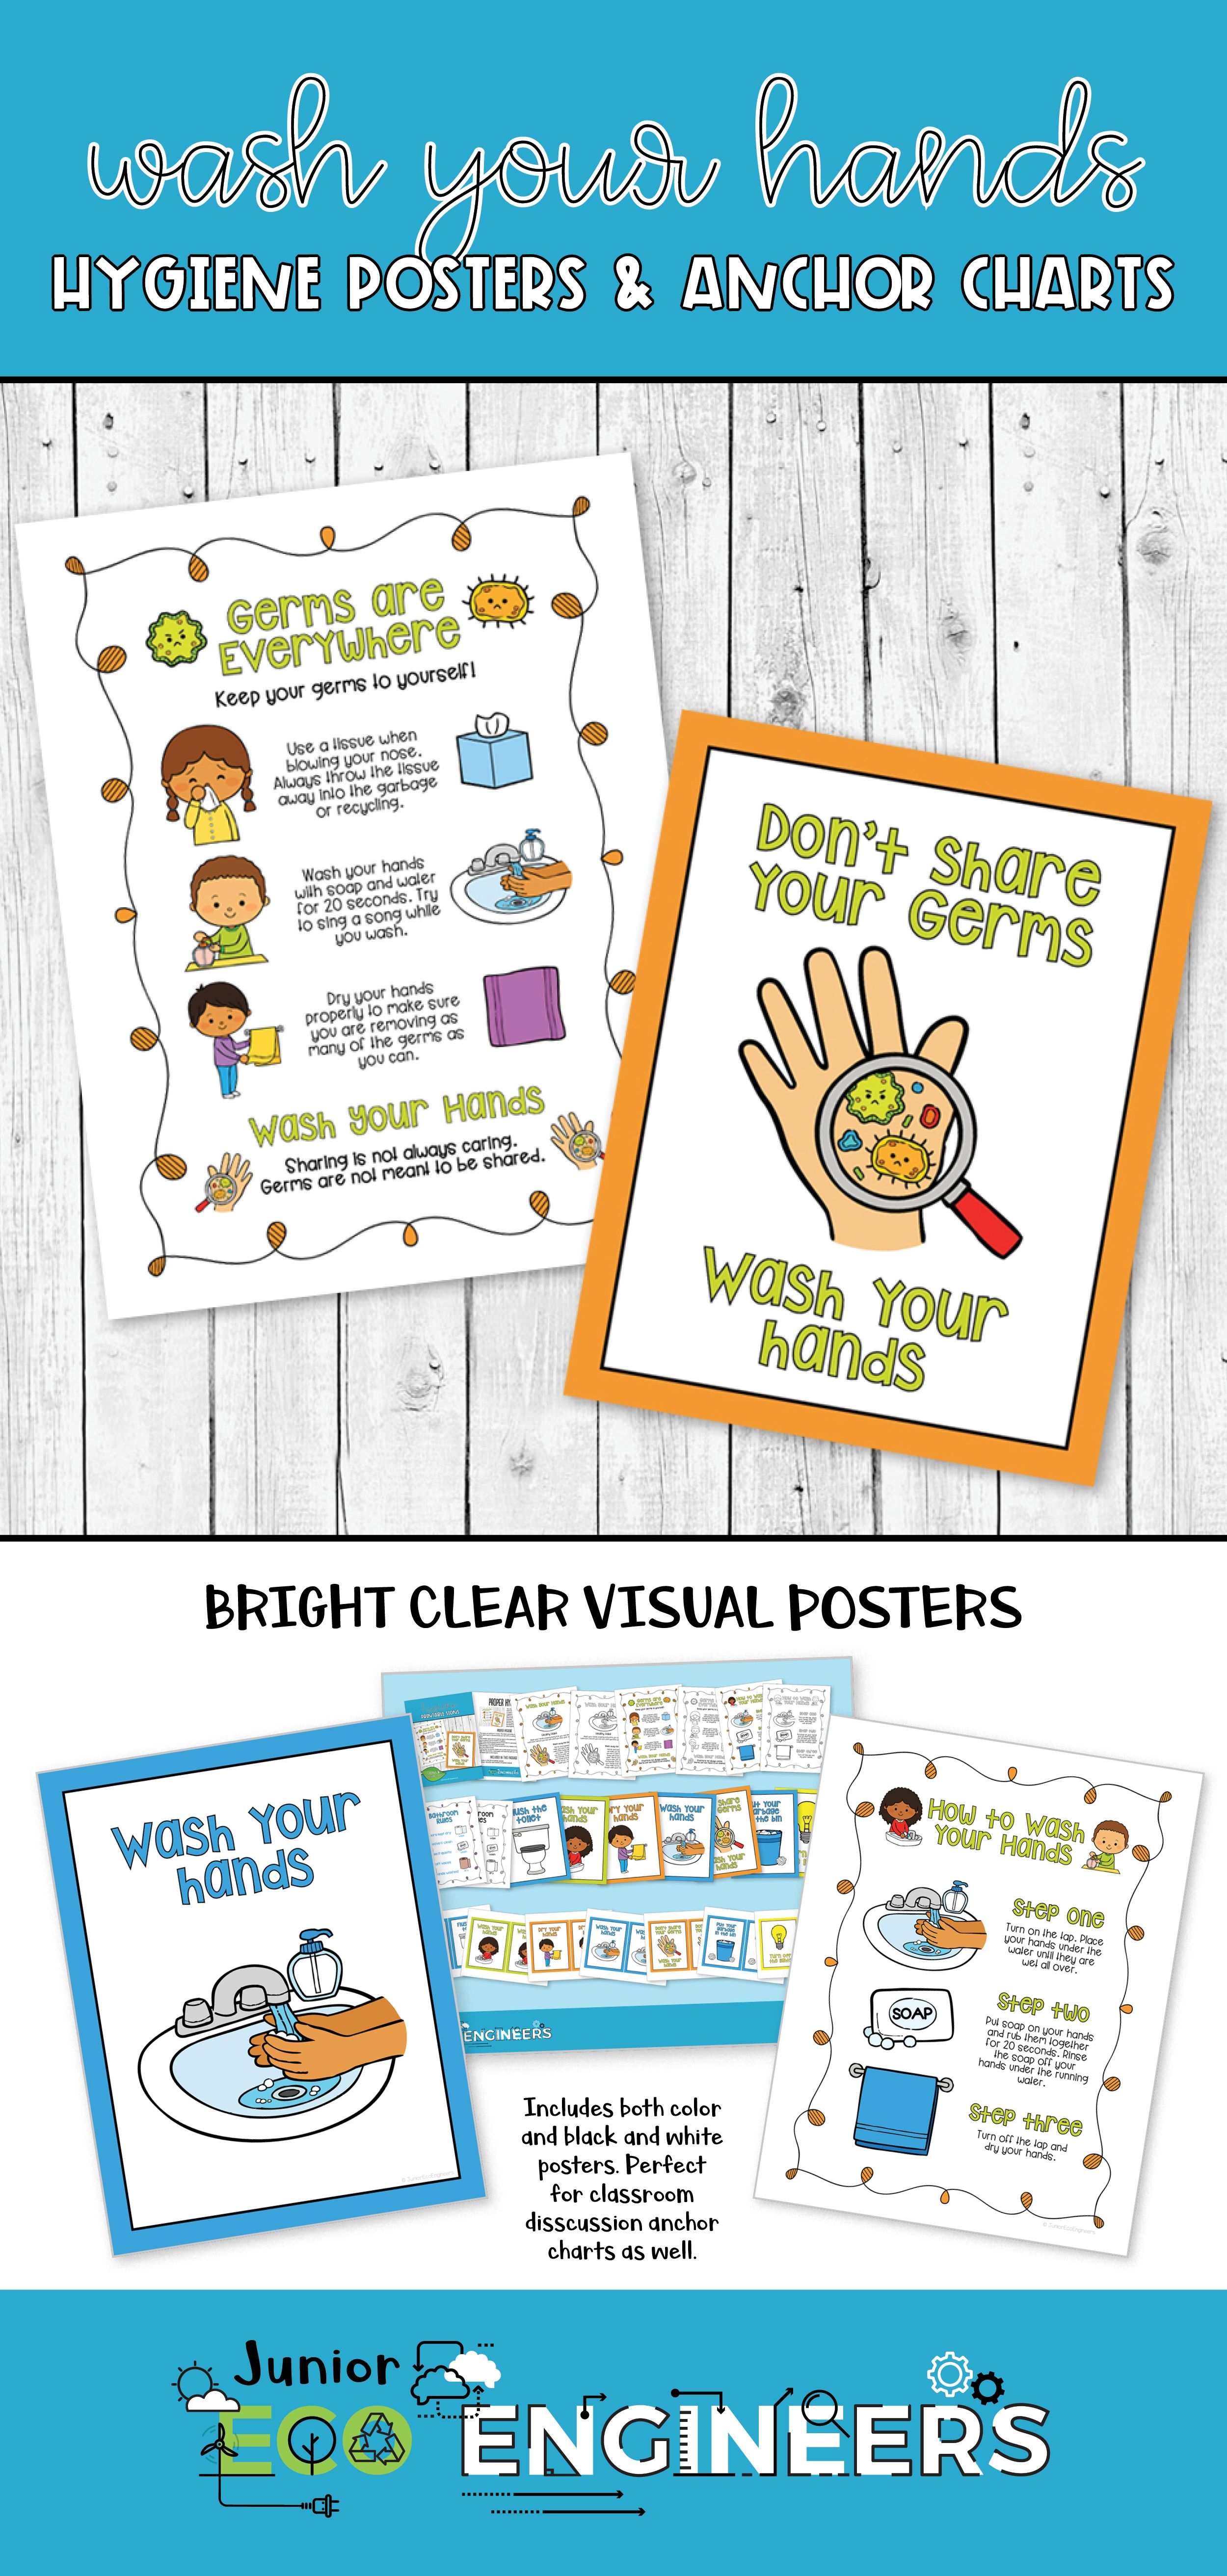 Wash Your Hands Hygiene Posters And Anchor Charts For Schools Anchor Charts Creative Lessons Elementary School Lessons [ 5250 x 2500 Pixel ]